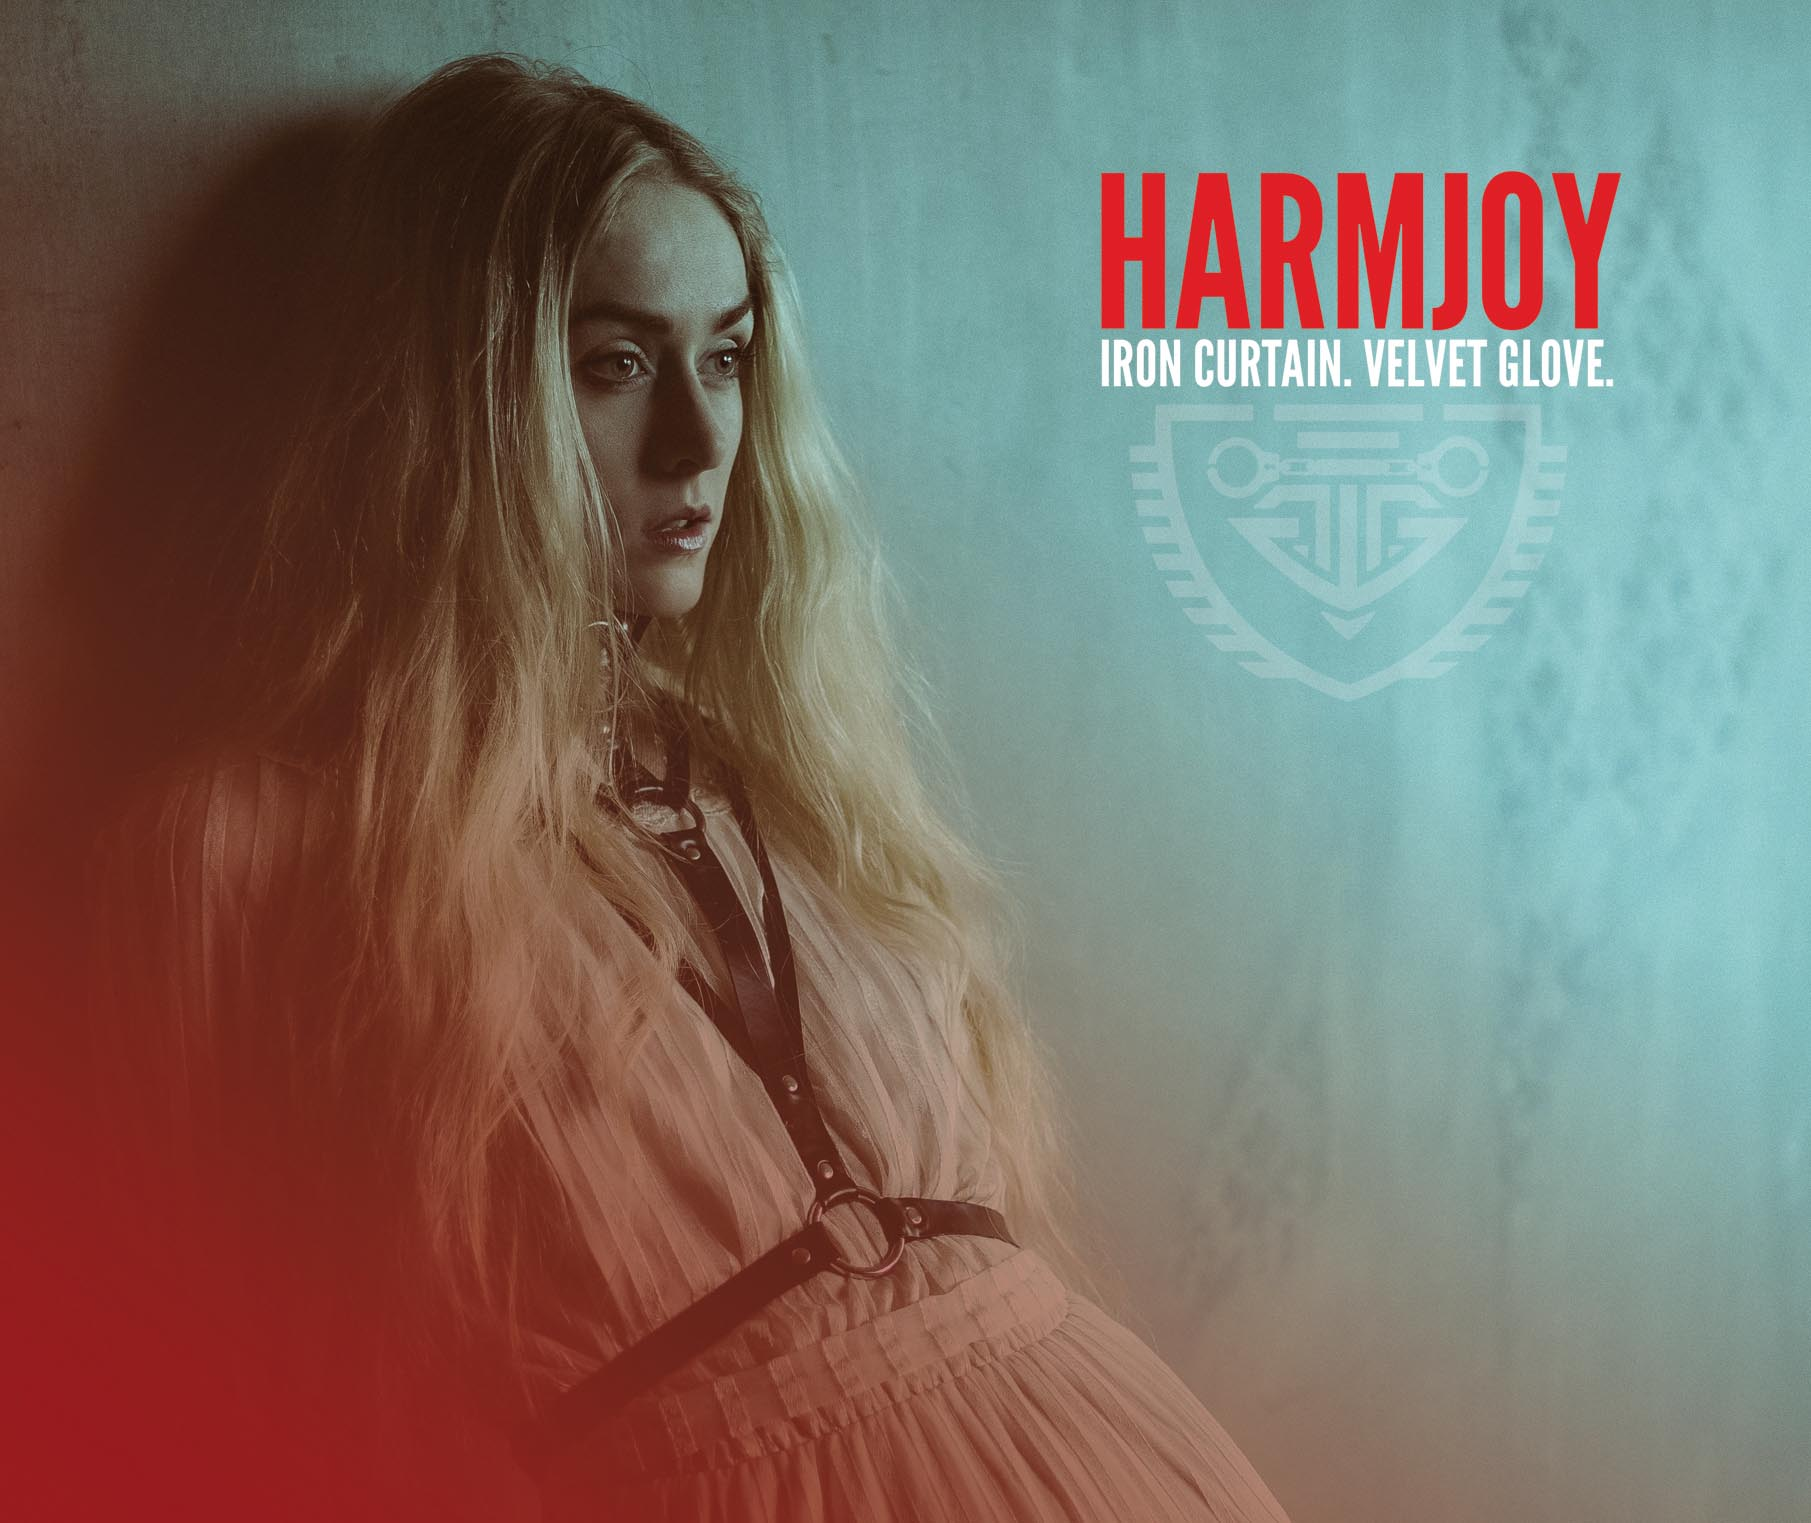 Harmjoy web